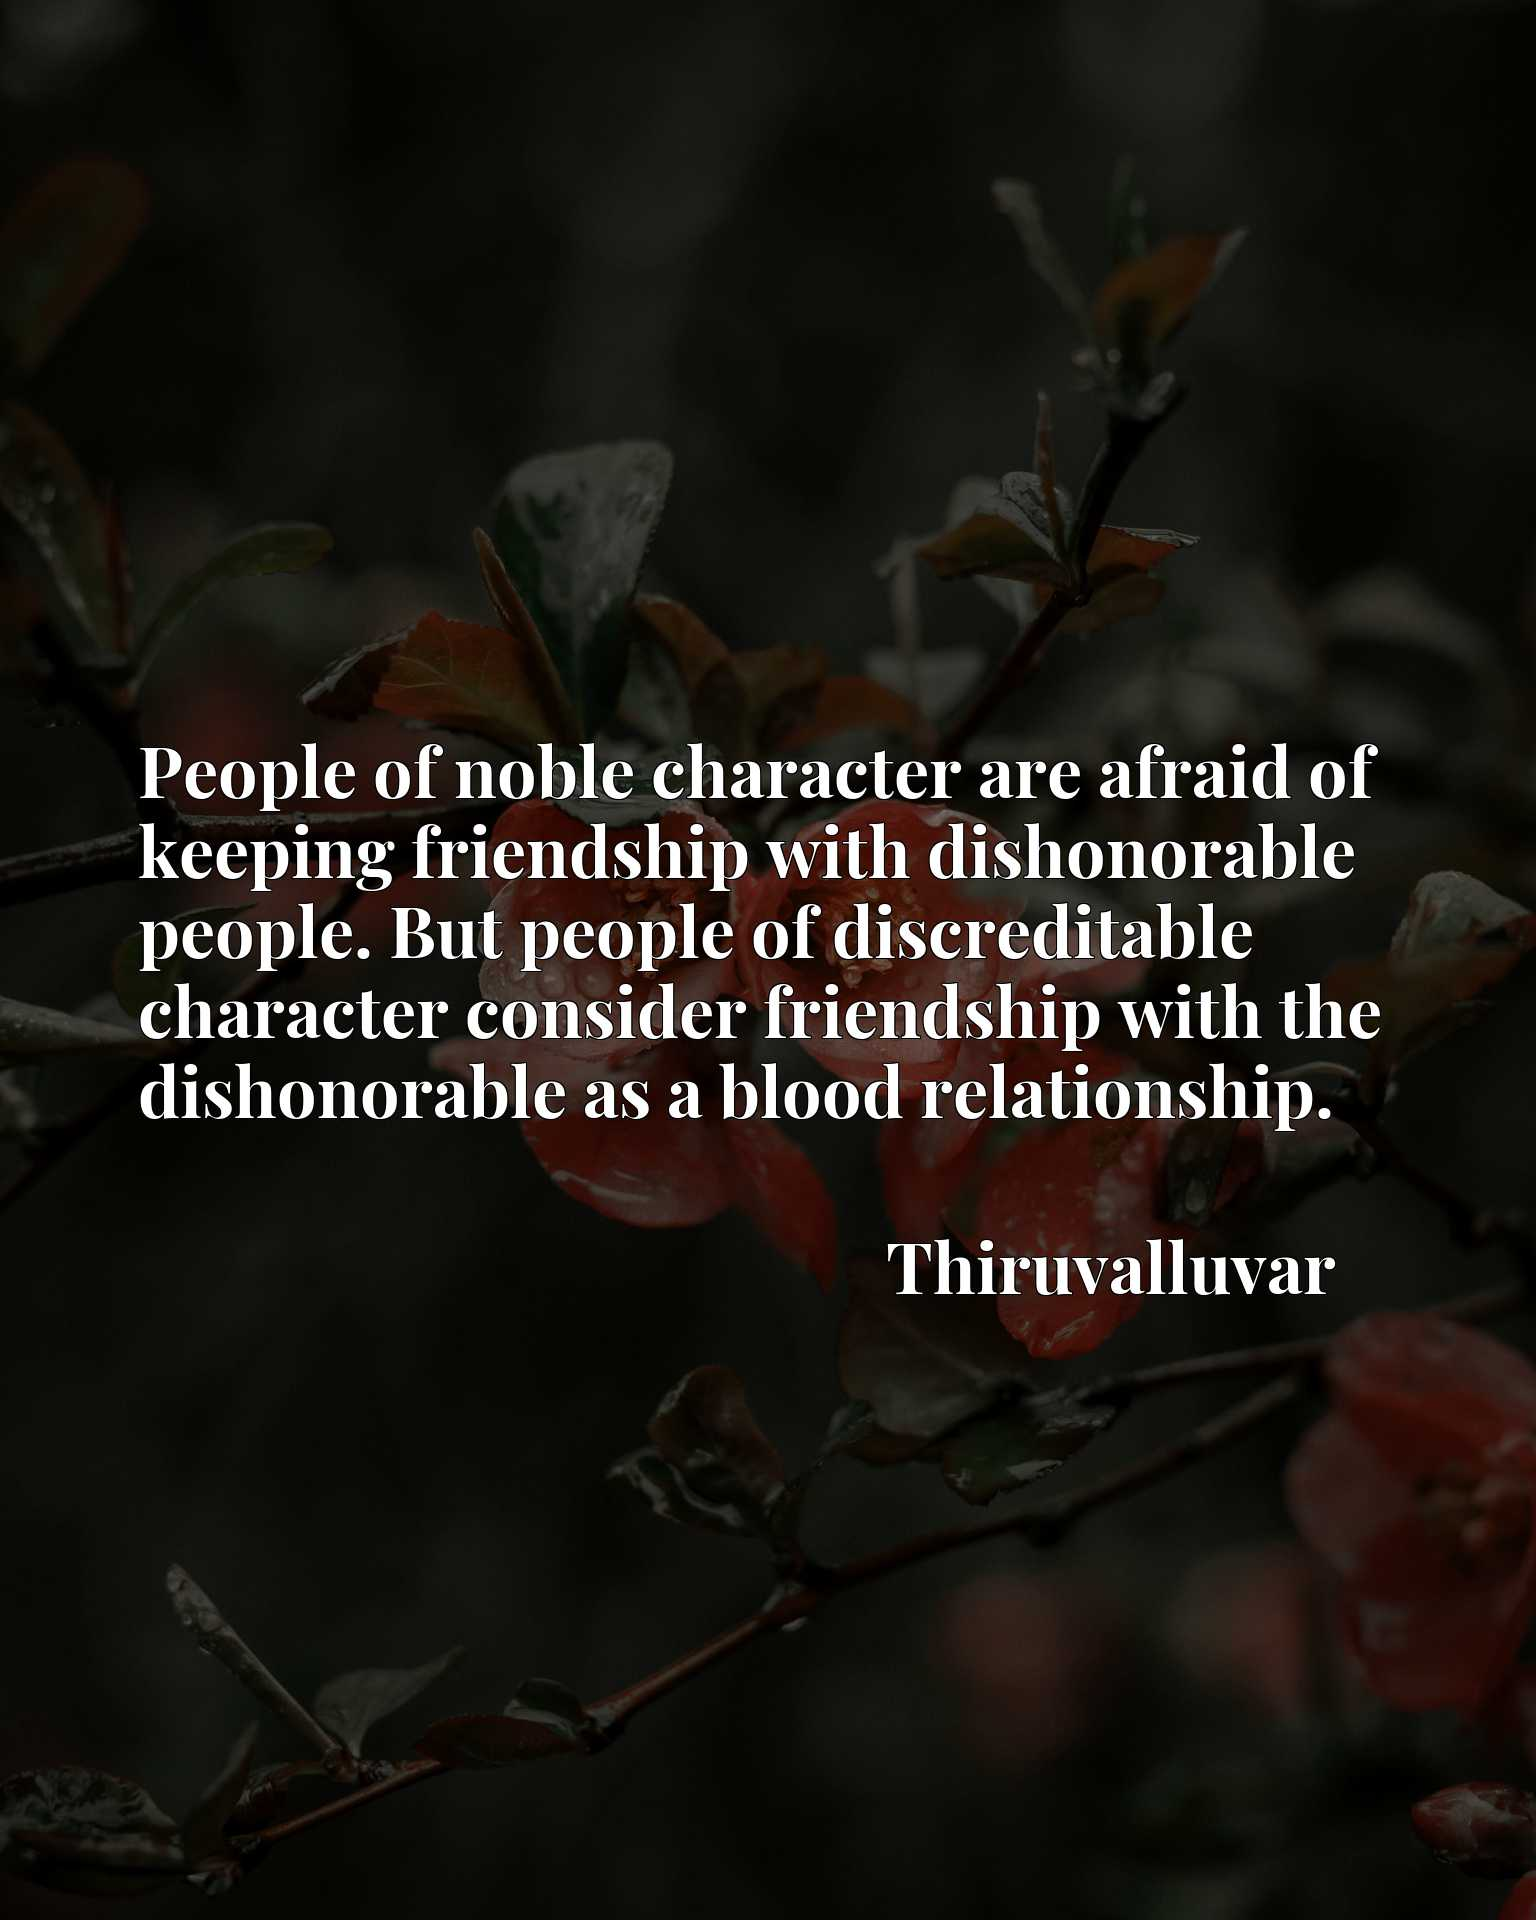 People of noble character are afraid of keeping friendship with dishonorable people. But people of discreditable character consider friendship with the dishonorable as a blood relationship.